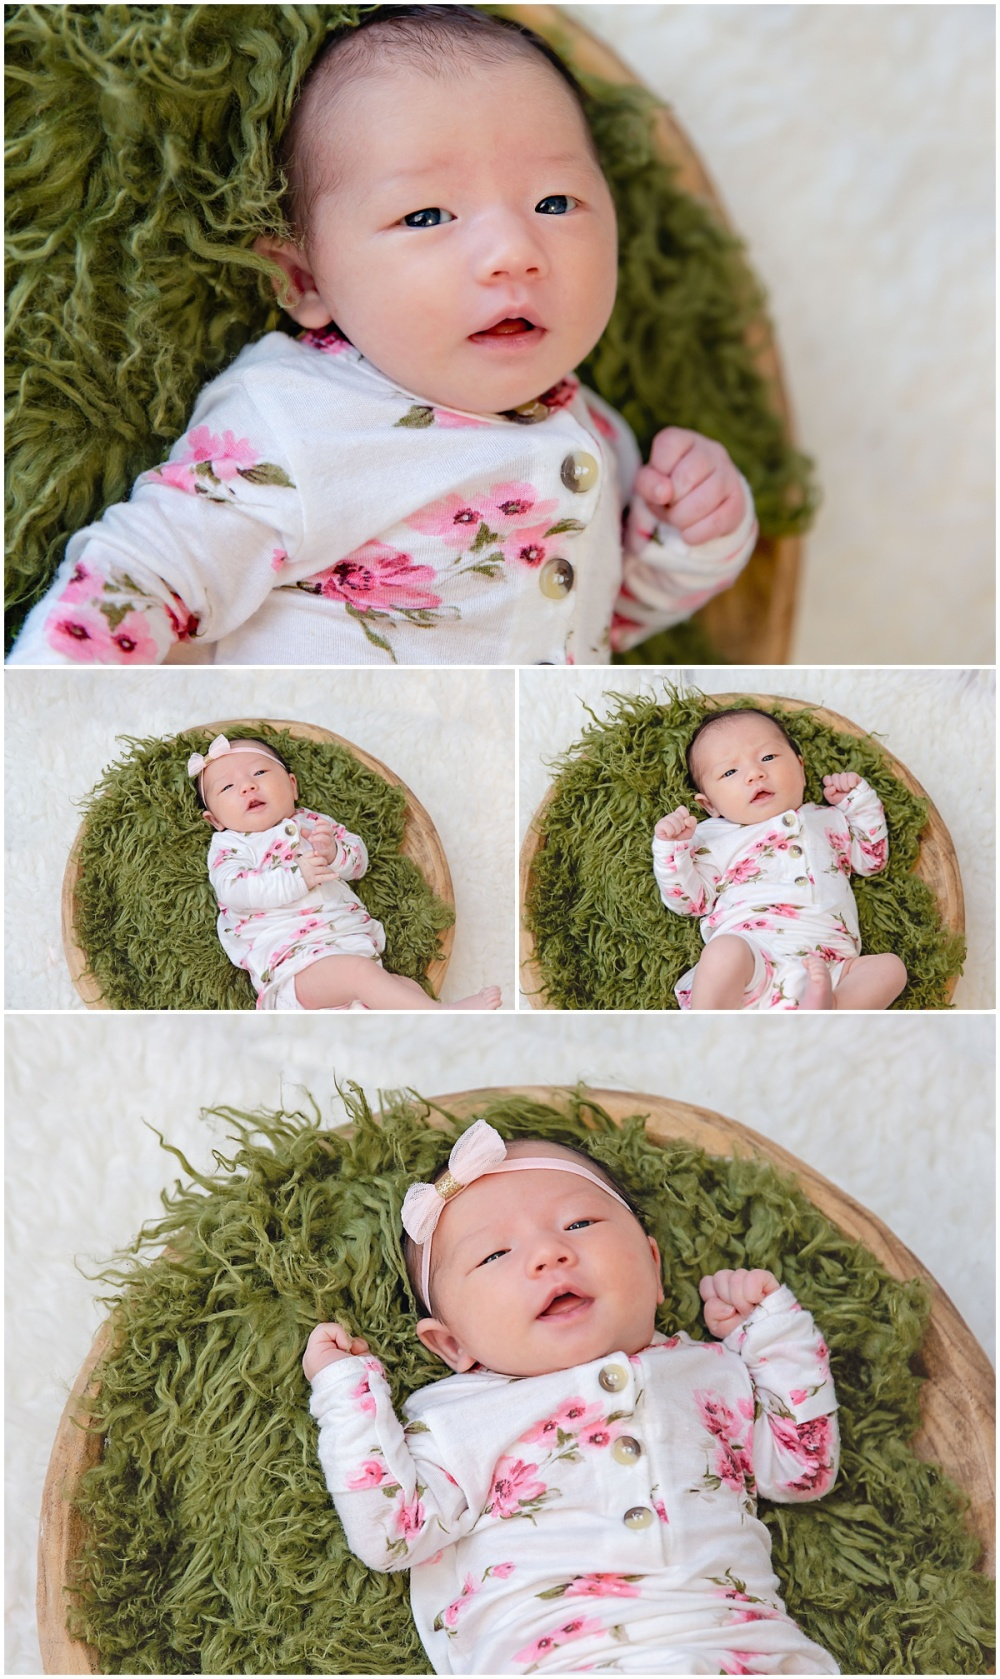 Lifestyle-newborn-family-photos-san-antonio-texas-carly-barton-photography_0011.jpg